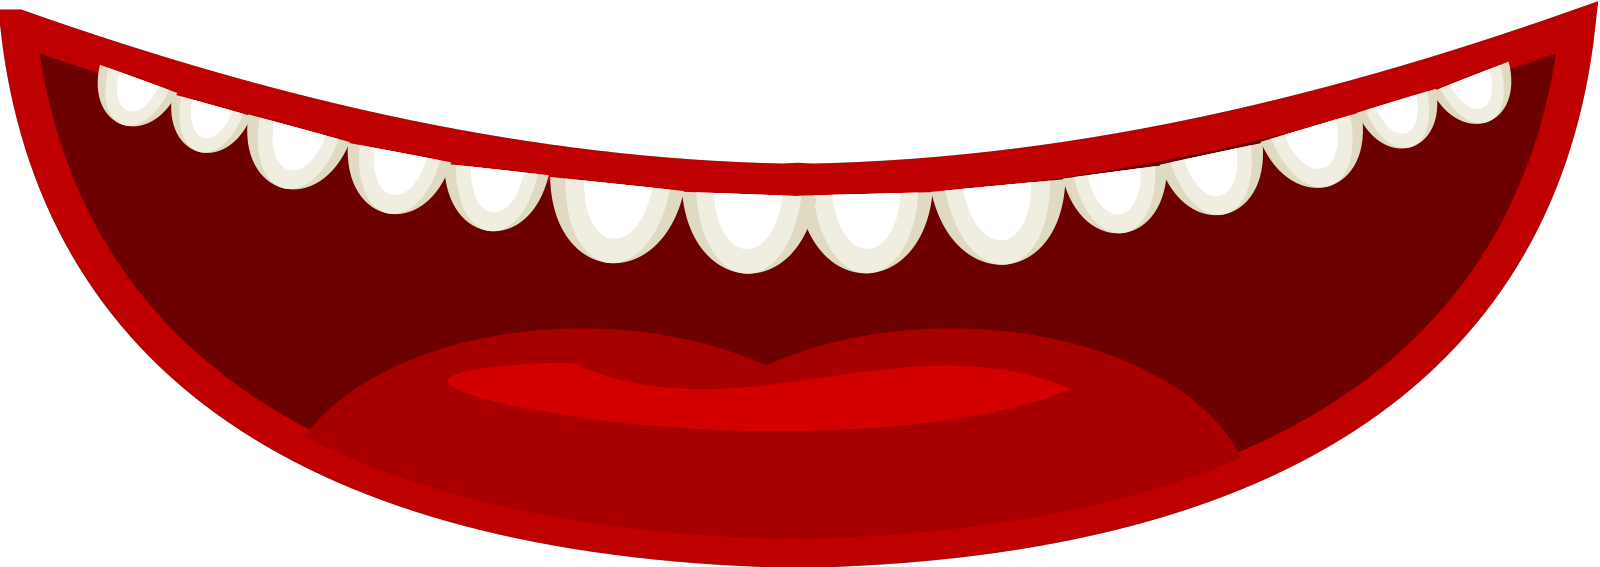 Mouth - Body Part SVG Clip arts